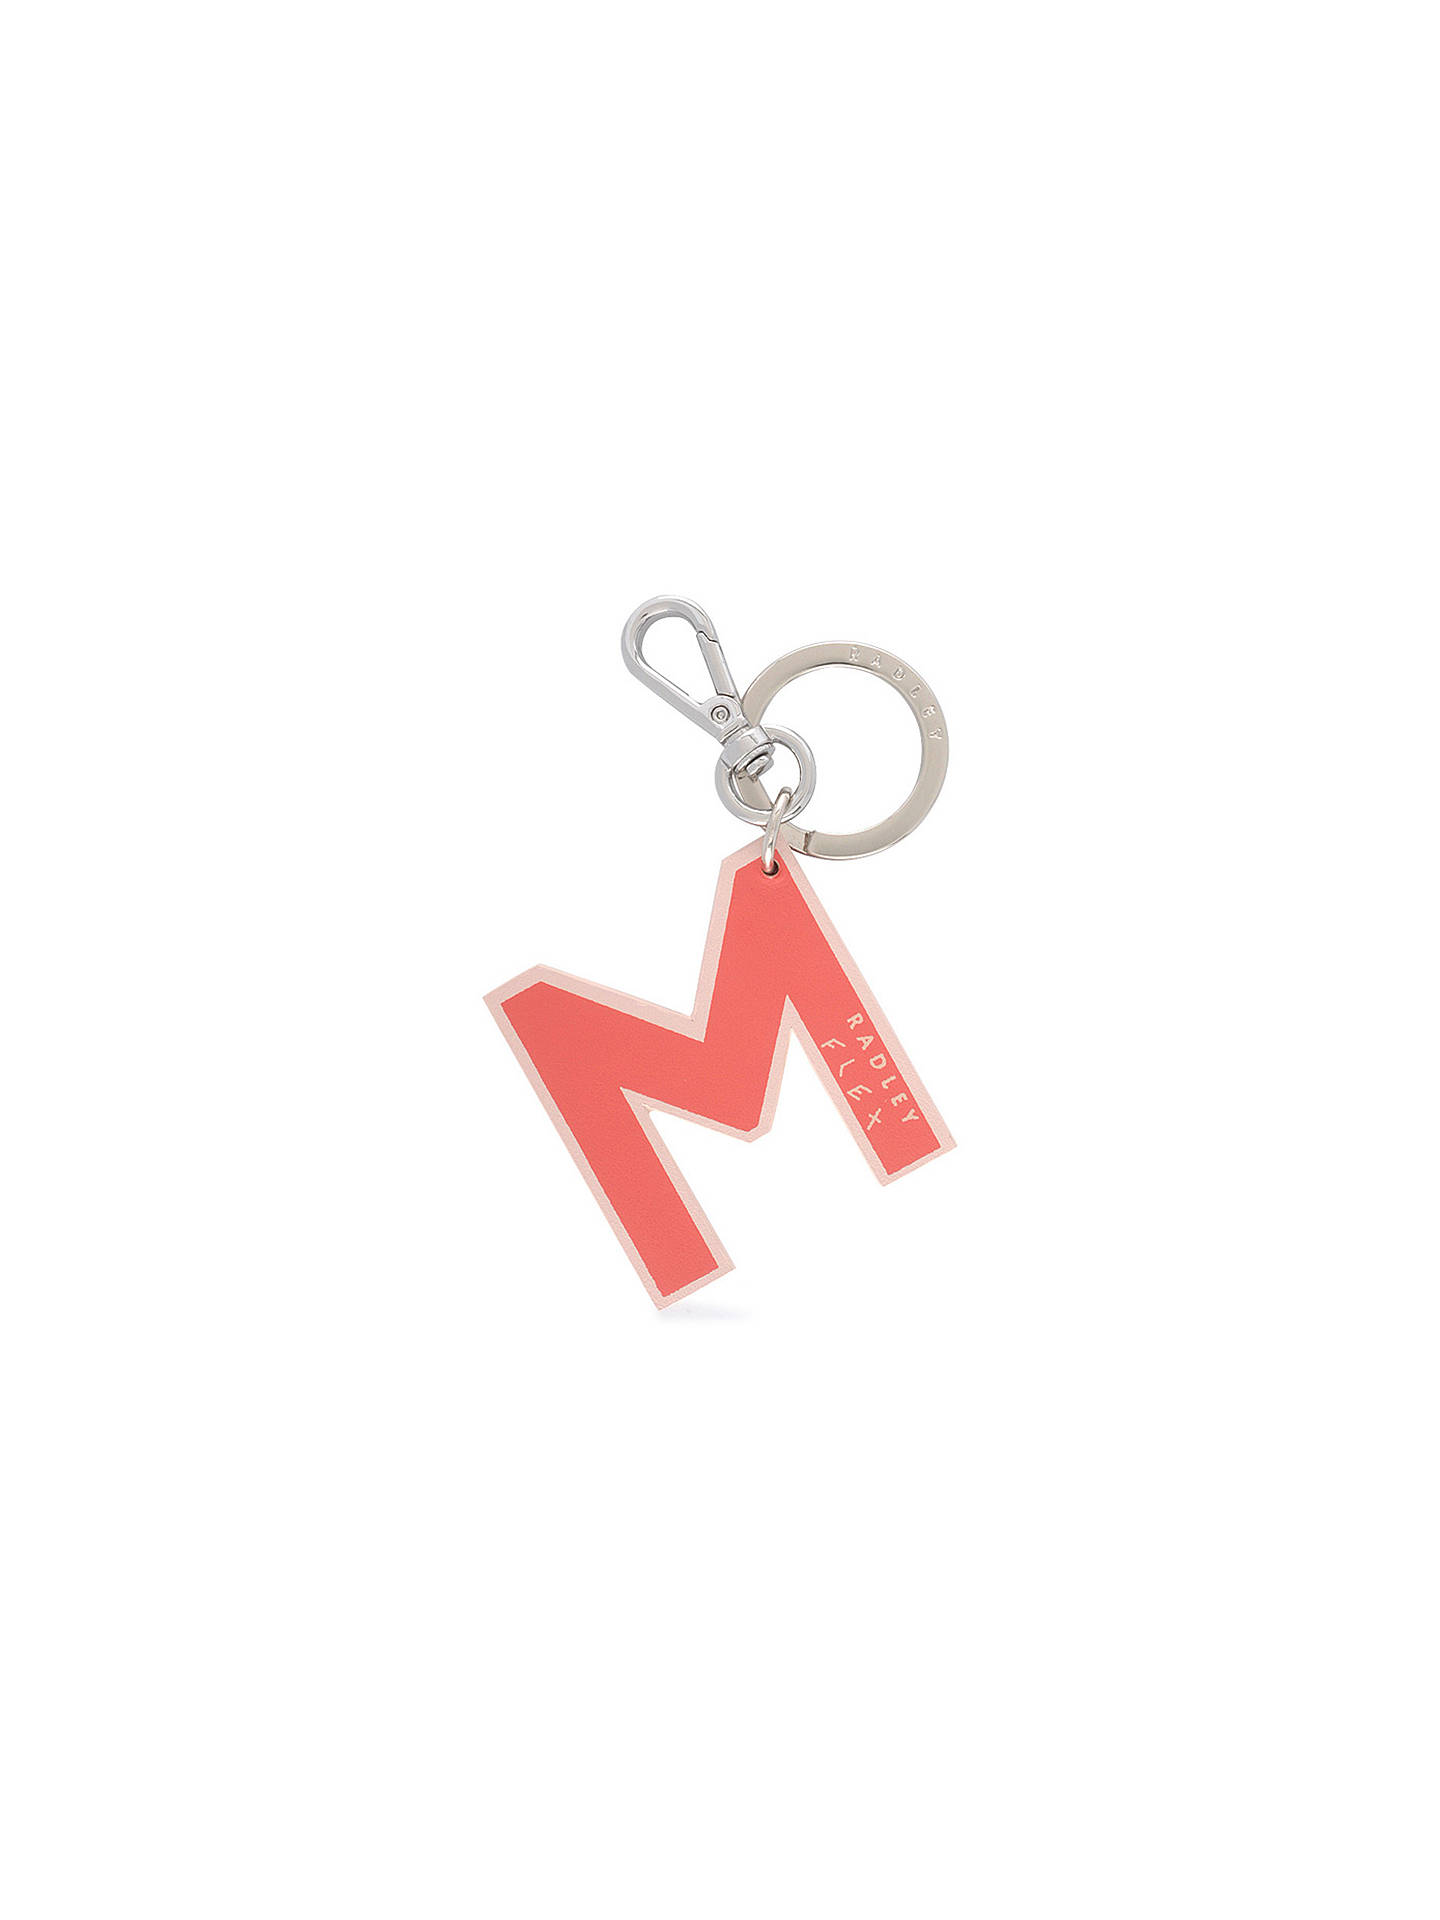 Buy Radley Flex Letters Small Bag Charm, Coral Pink M Online at johnlewis.com